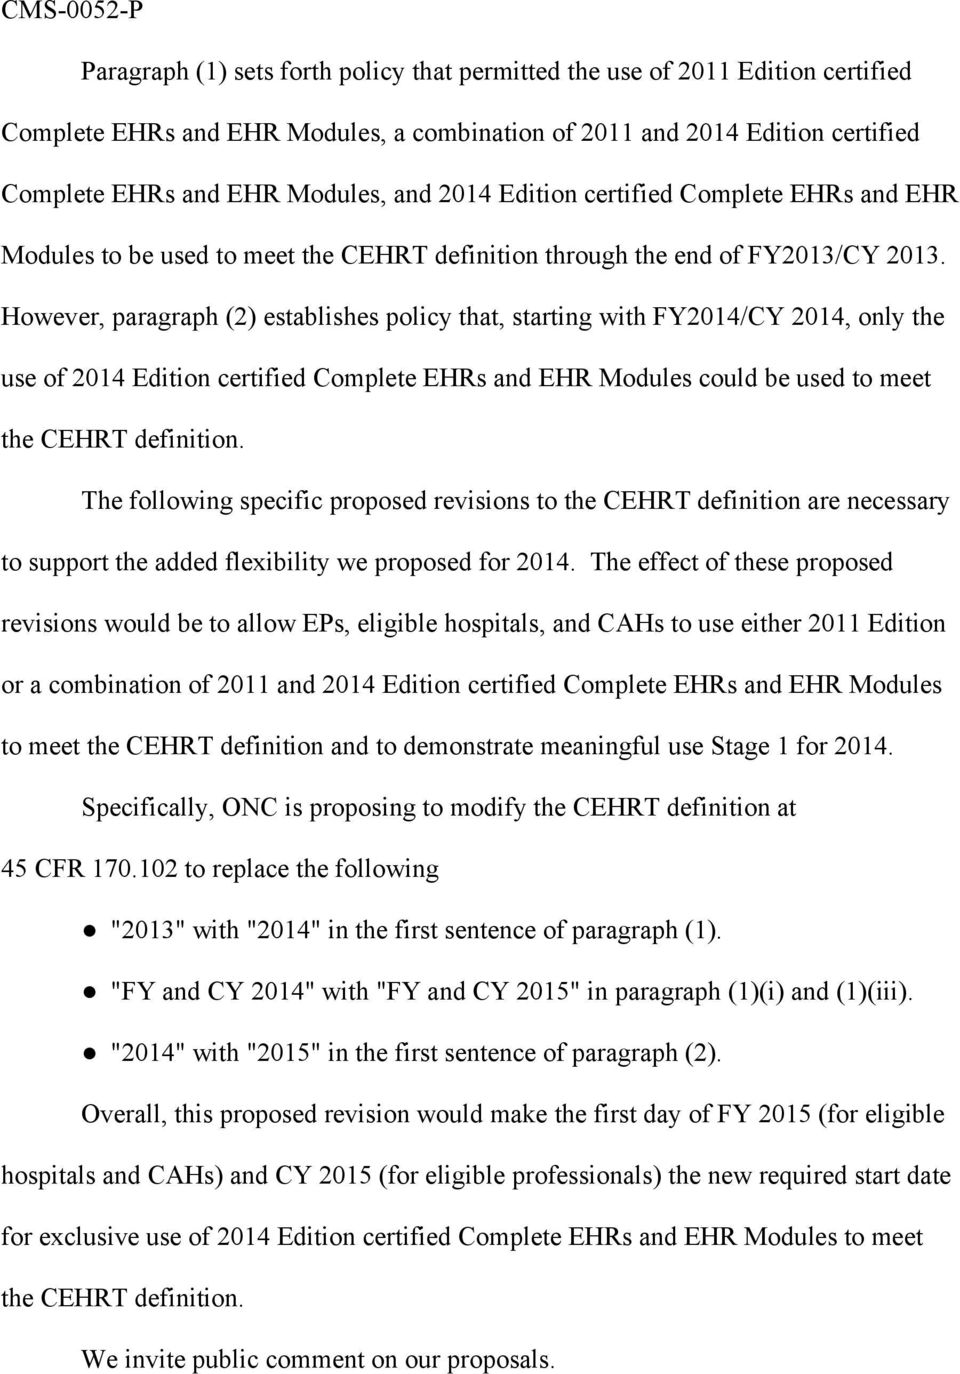 However, paragraph (2) establishes policy that, starting with FY2014/CY 2014, only the use of 2014 Edition certified Complete EHRs and EHR Modules could be used to meet the CEHRT definition.